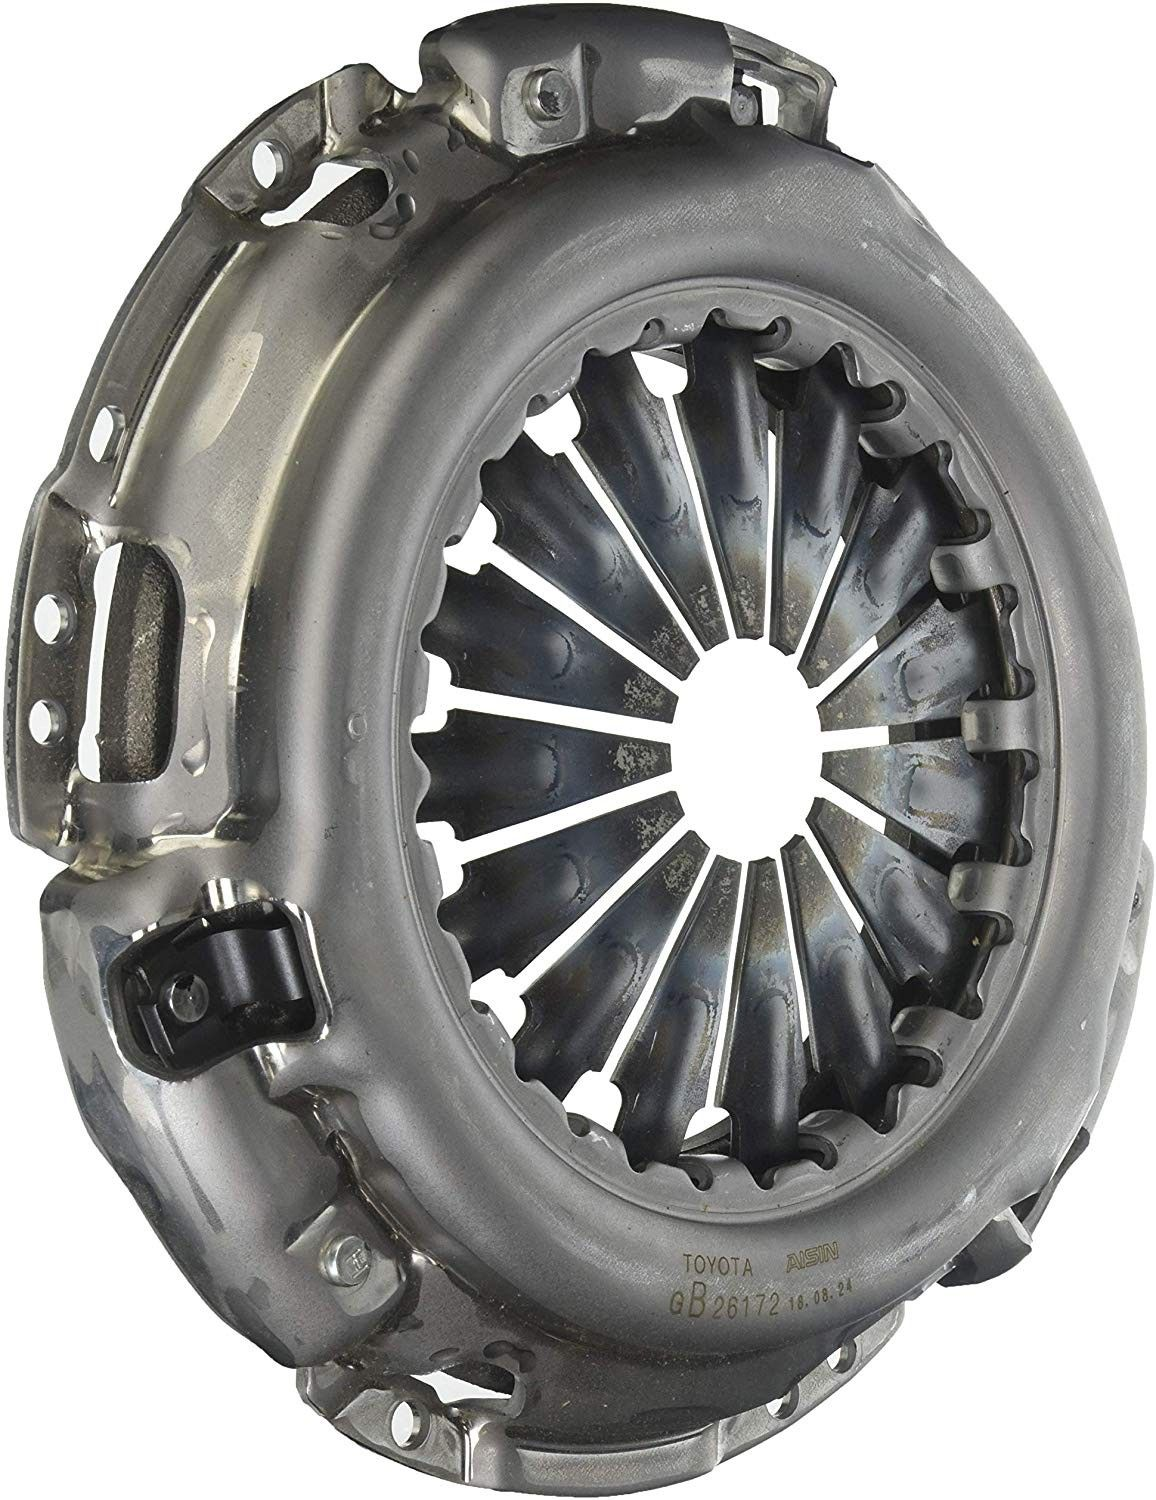 Luk Clutch Pressure Plate For TATA 2516 GB50/GB60 without bearing 352 - 1420233200